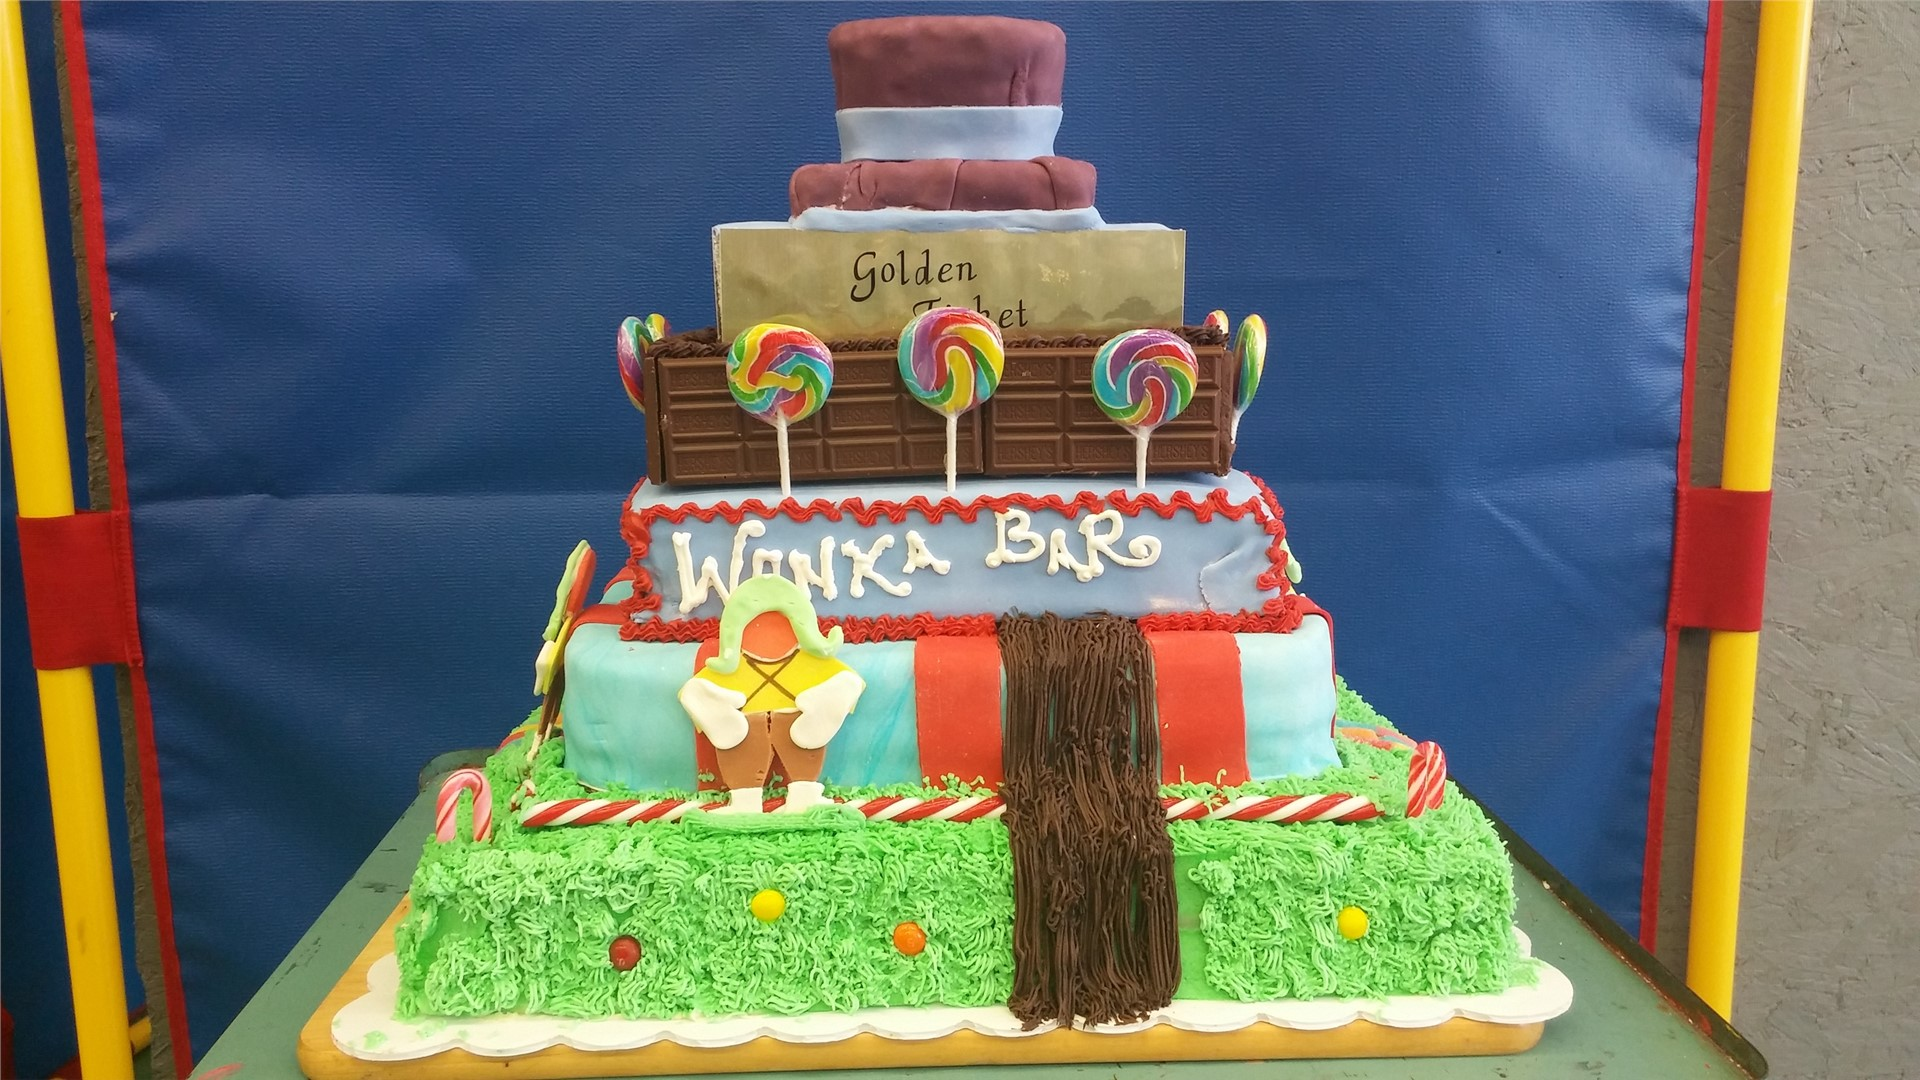 Front View of Winning Cake